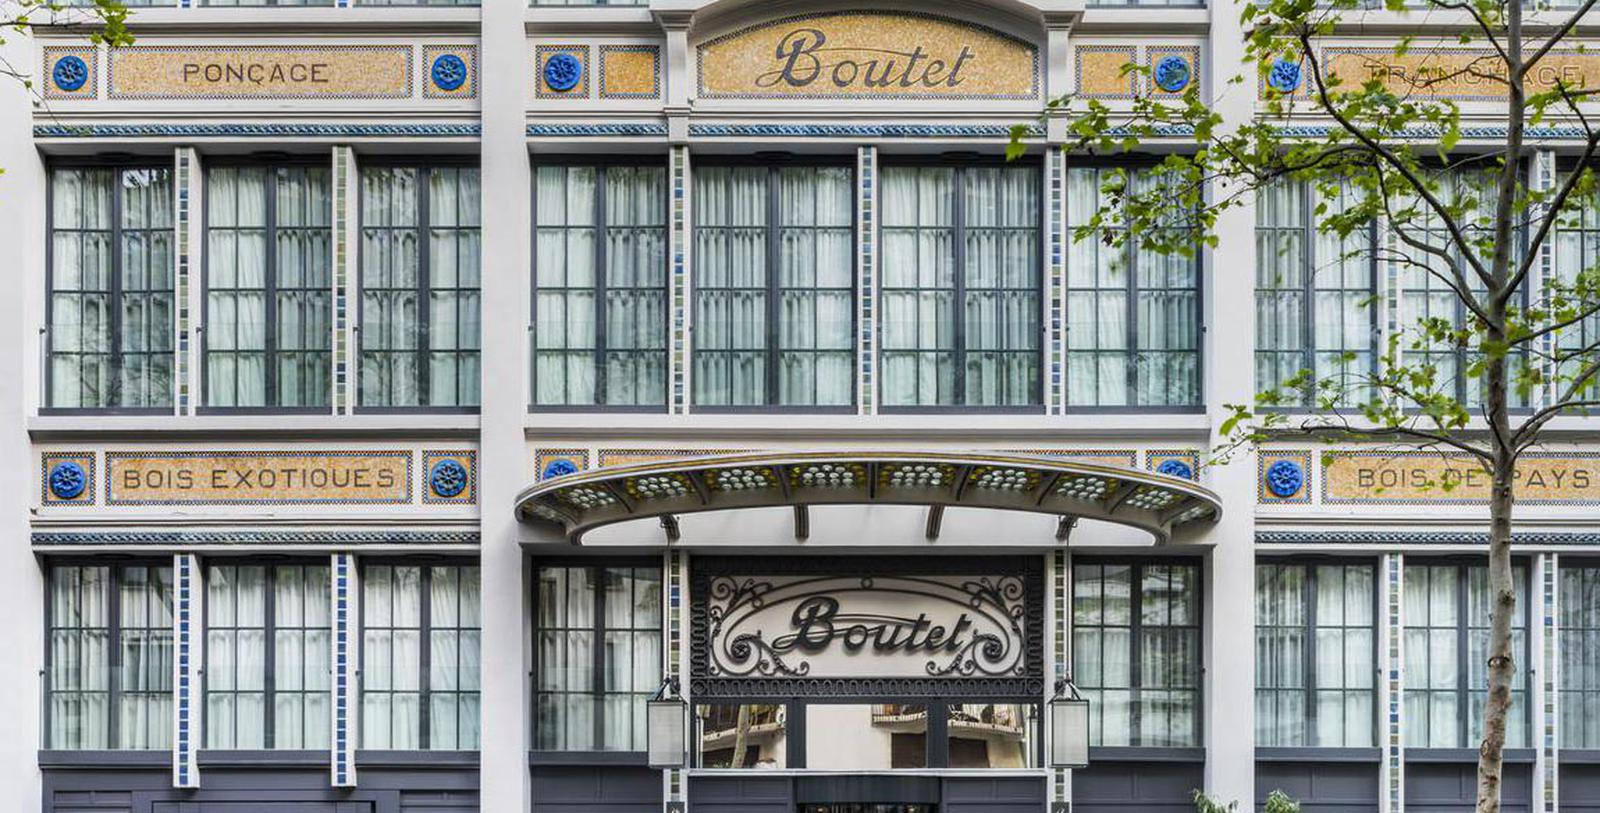 Image of Le Relais de l'Entrecote Restaurant Hôtel Paris Bastille Boutet - MGallery by Sofitel, 1926, Member of Historic Hotels Worldwide, in Paris, France, Taste